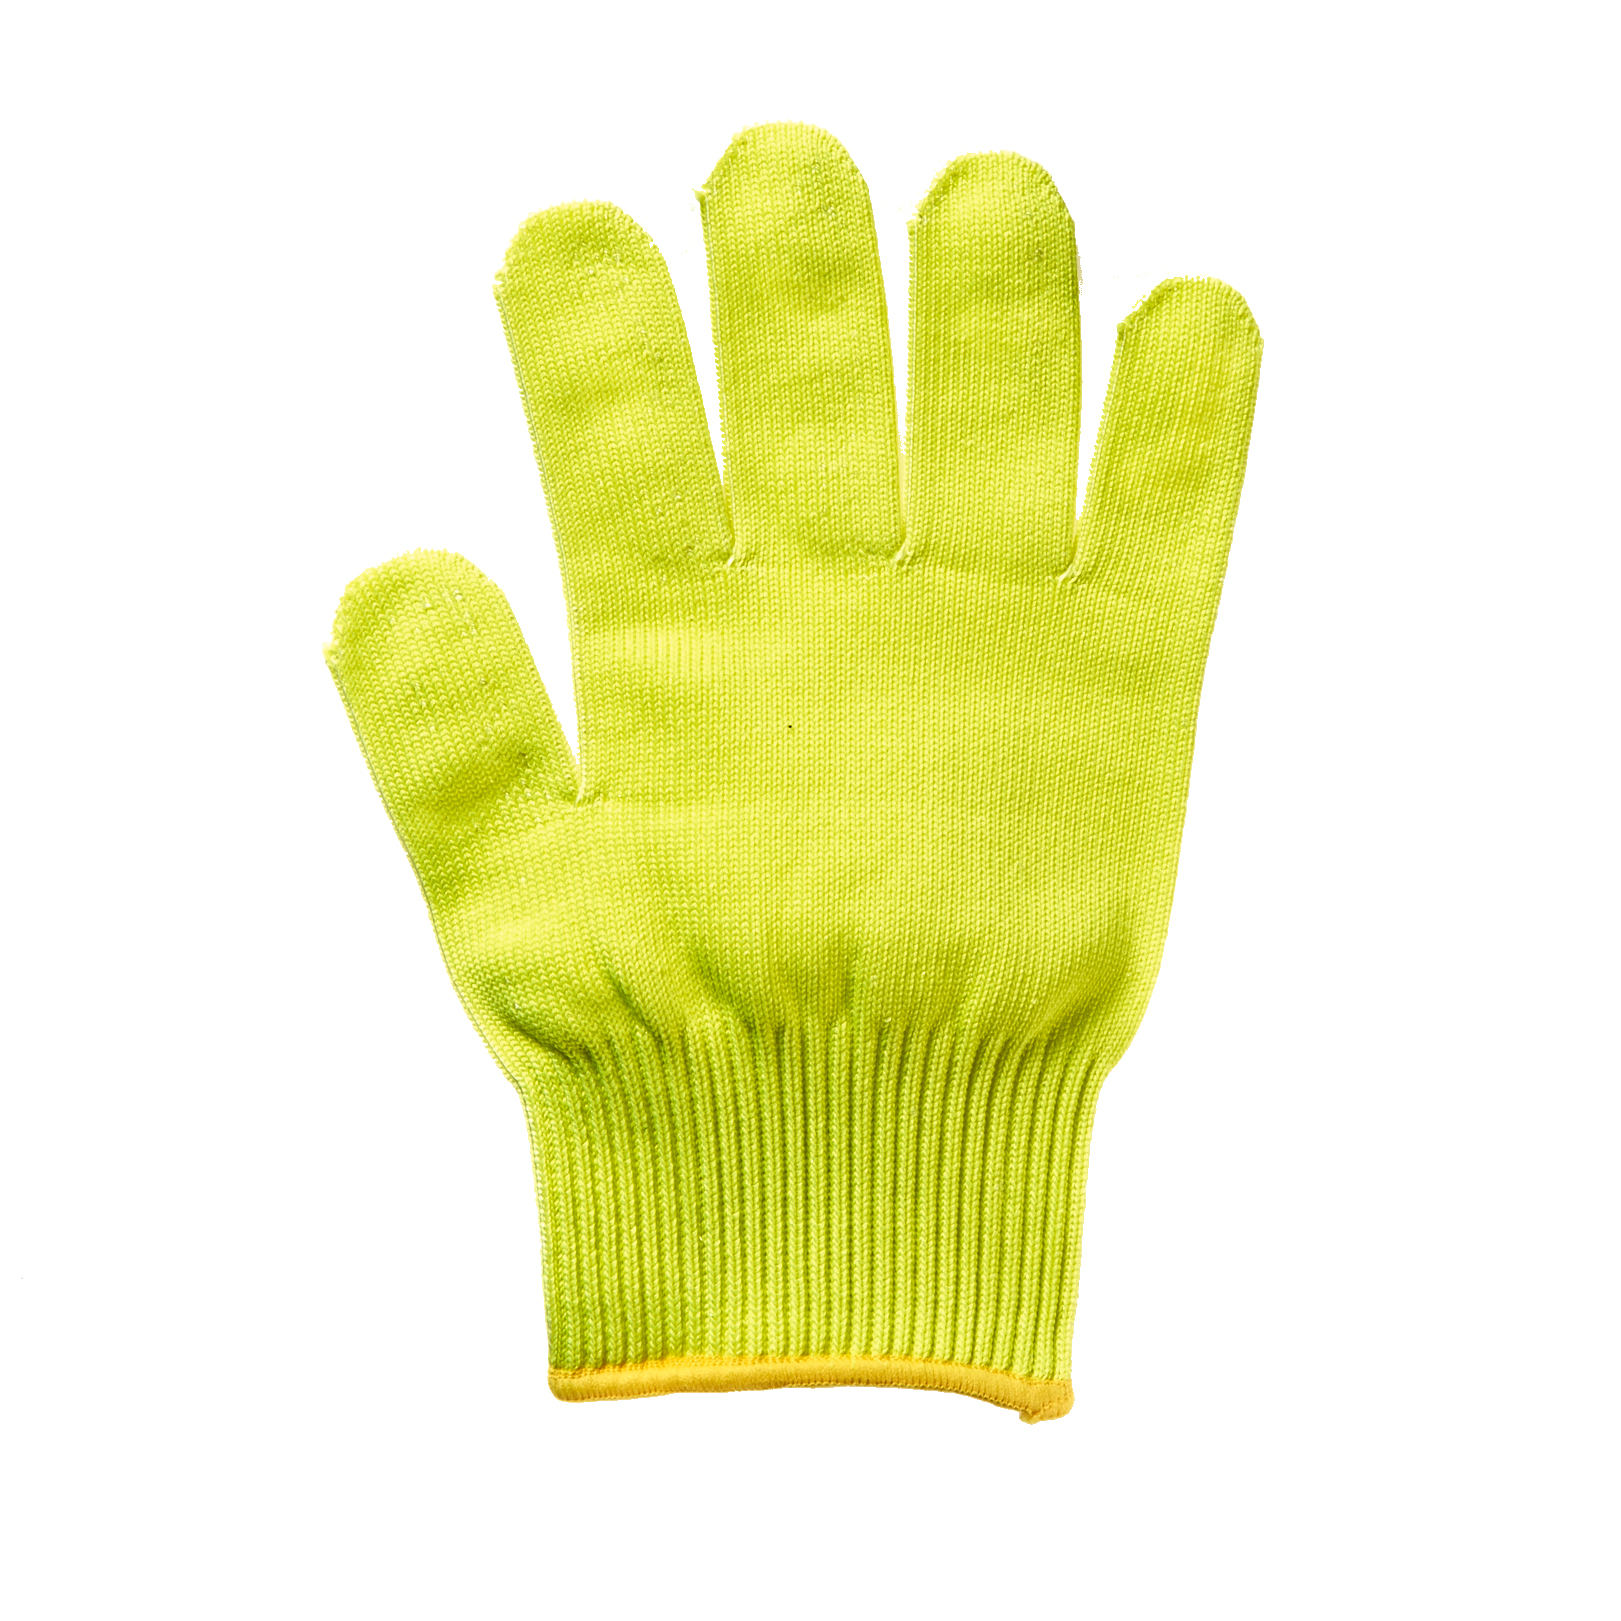 Mercer Culinary M33415YLXS glove, cut resistant